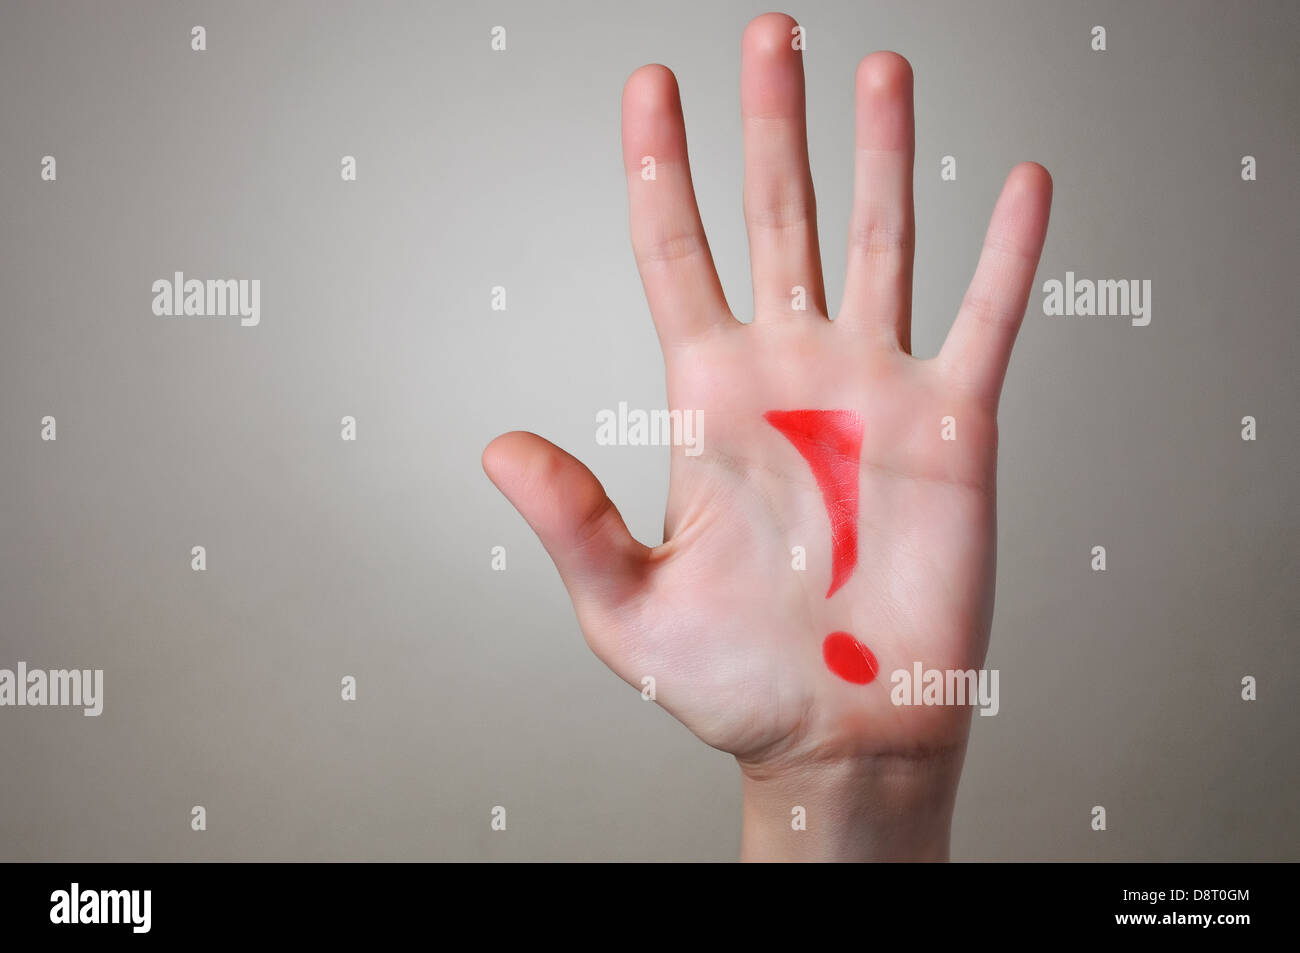 Red Exclamation Mark on a Hand - Stock Image